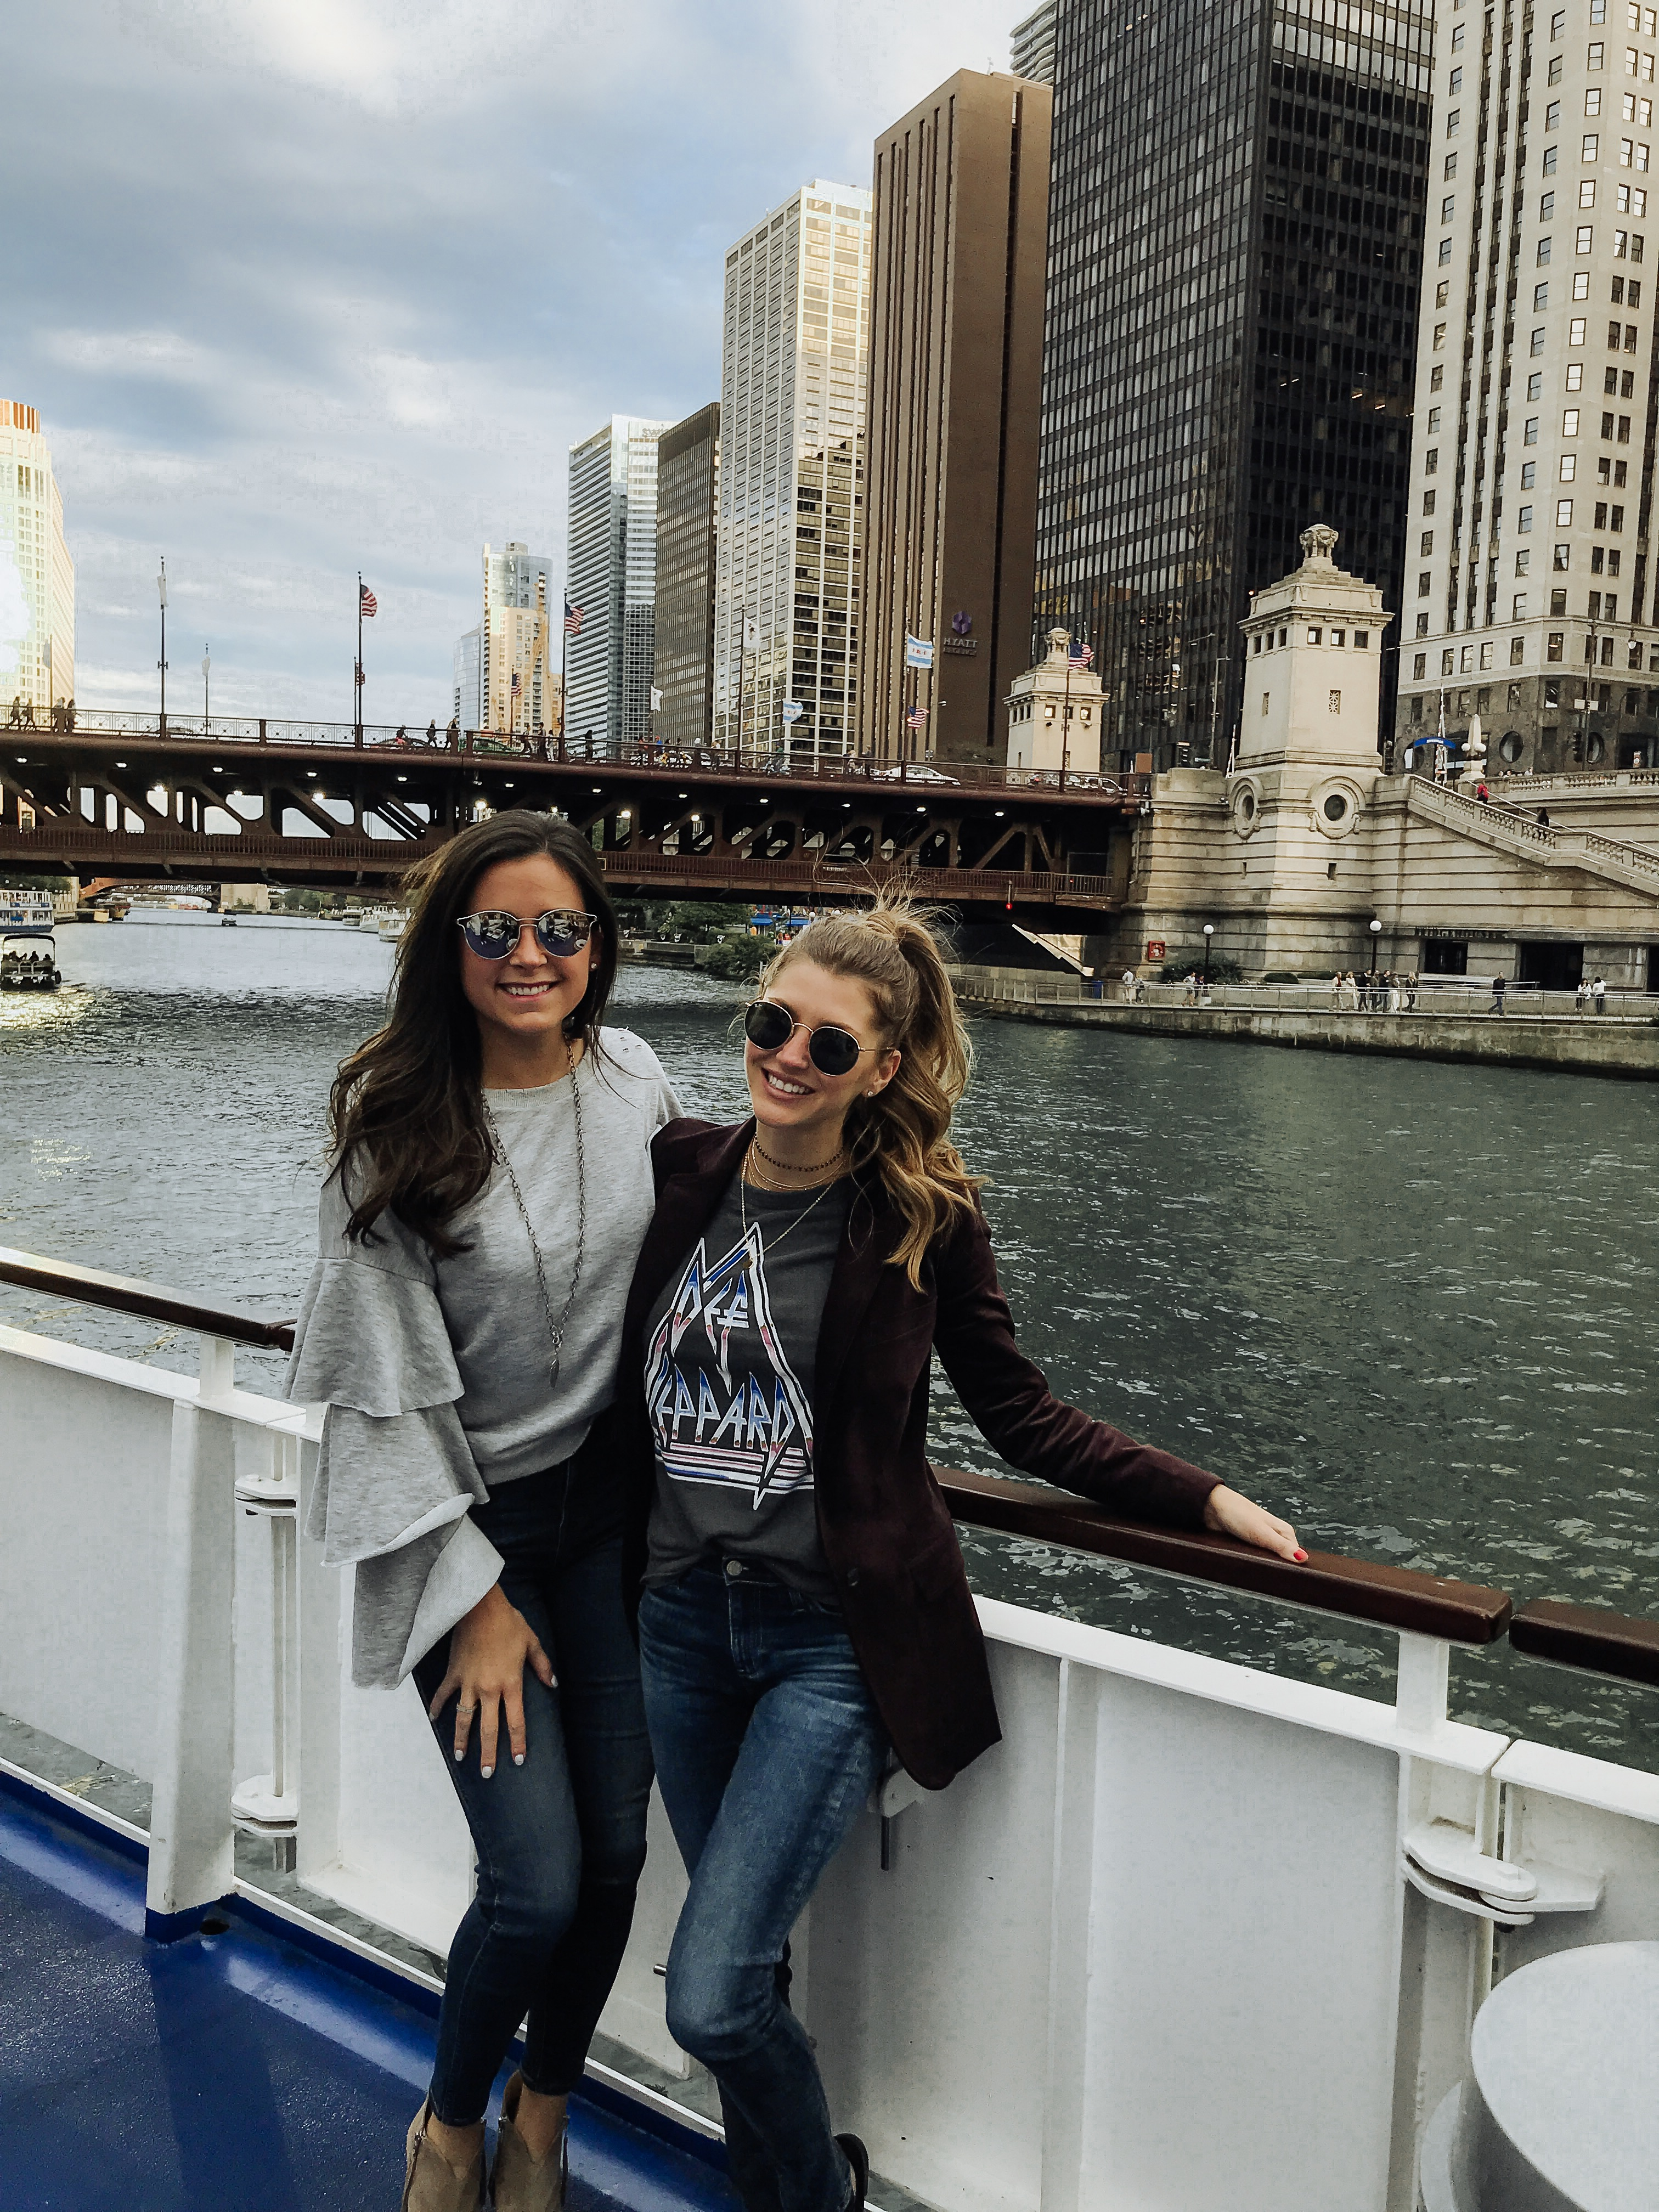 Blogger and friend on Windella boat tour in Chicago Illinois